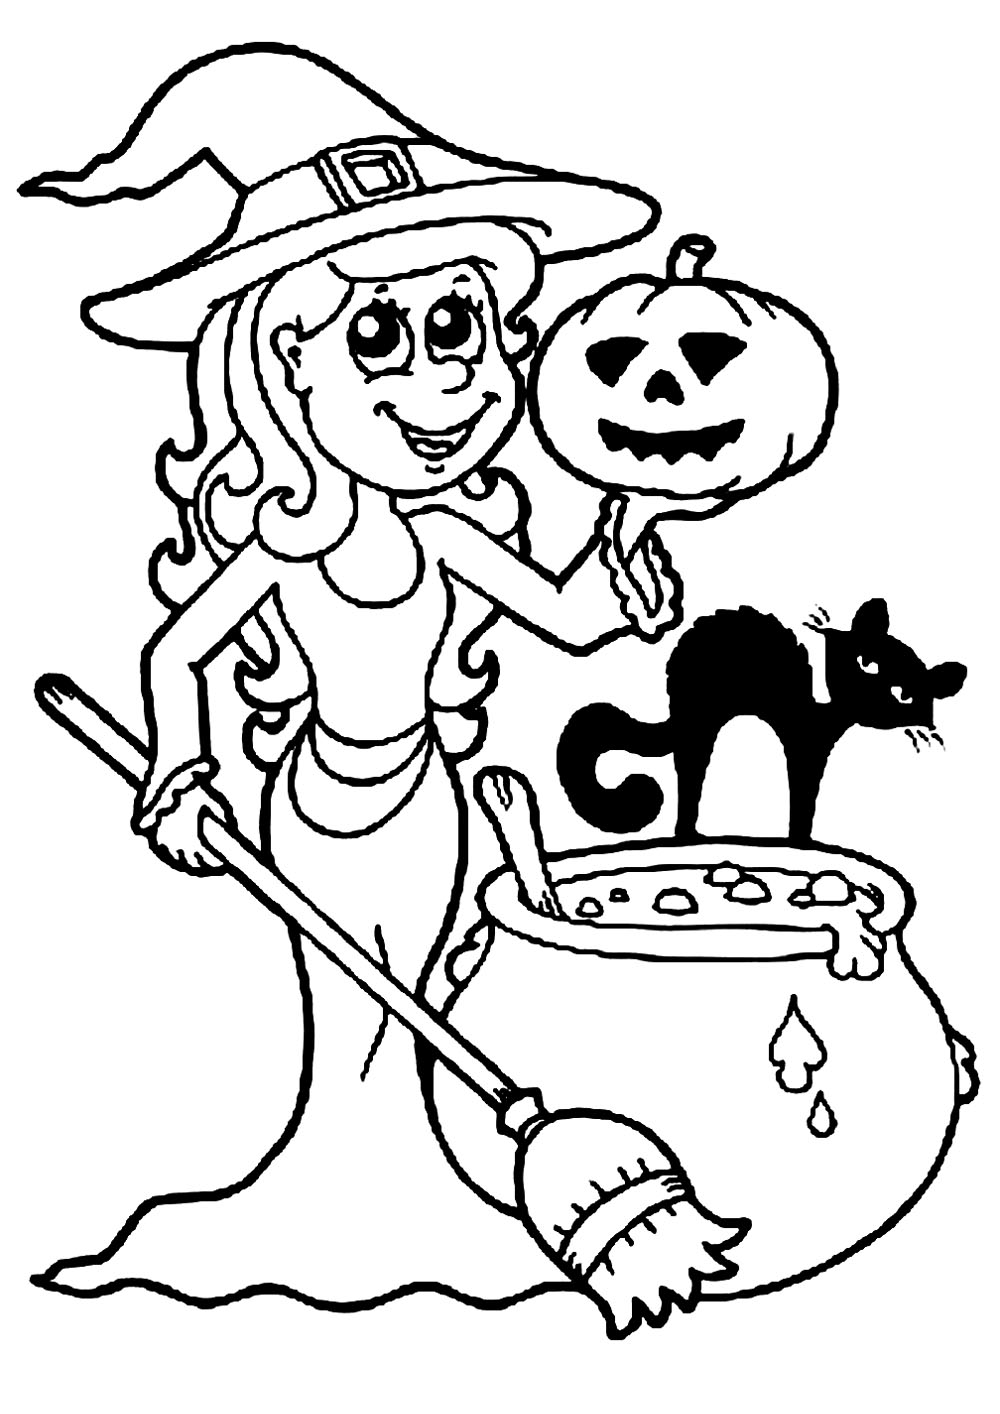 coloring halloween kids free halloween coloring pages for kids or for the kid in you halloween kids coloring